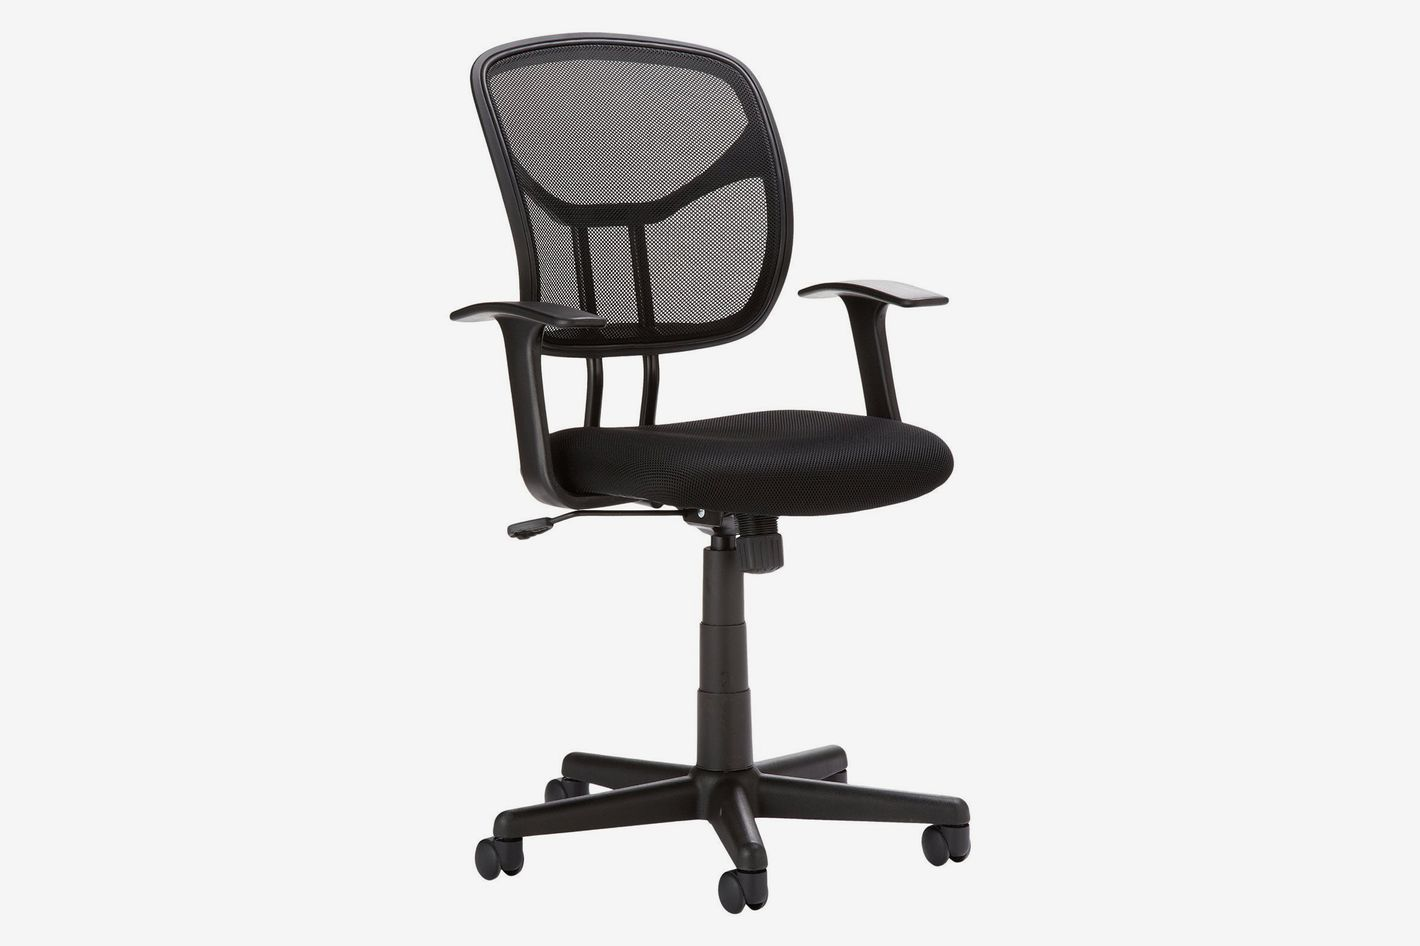 Basics Mesh Office Chair Under 100